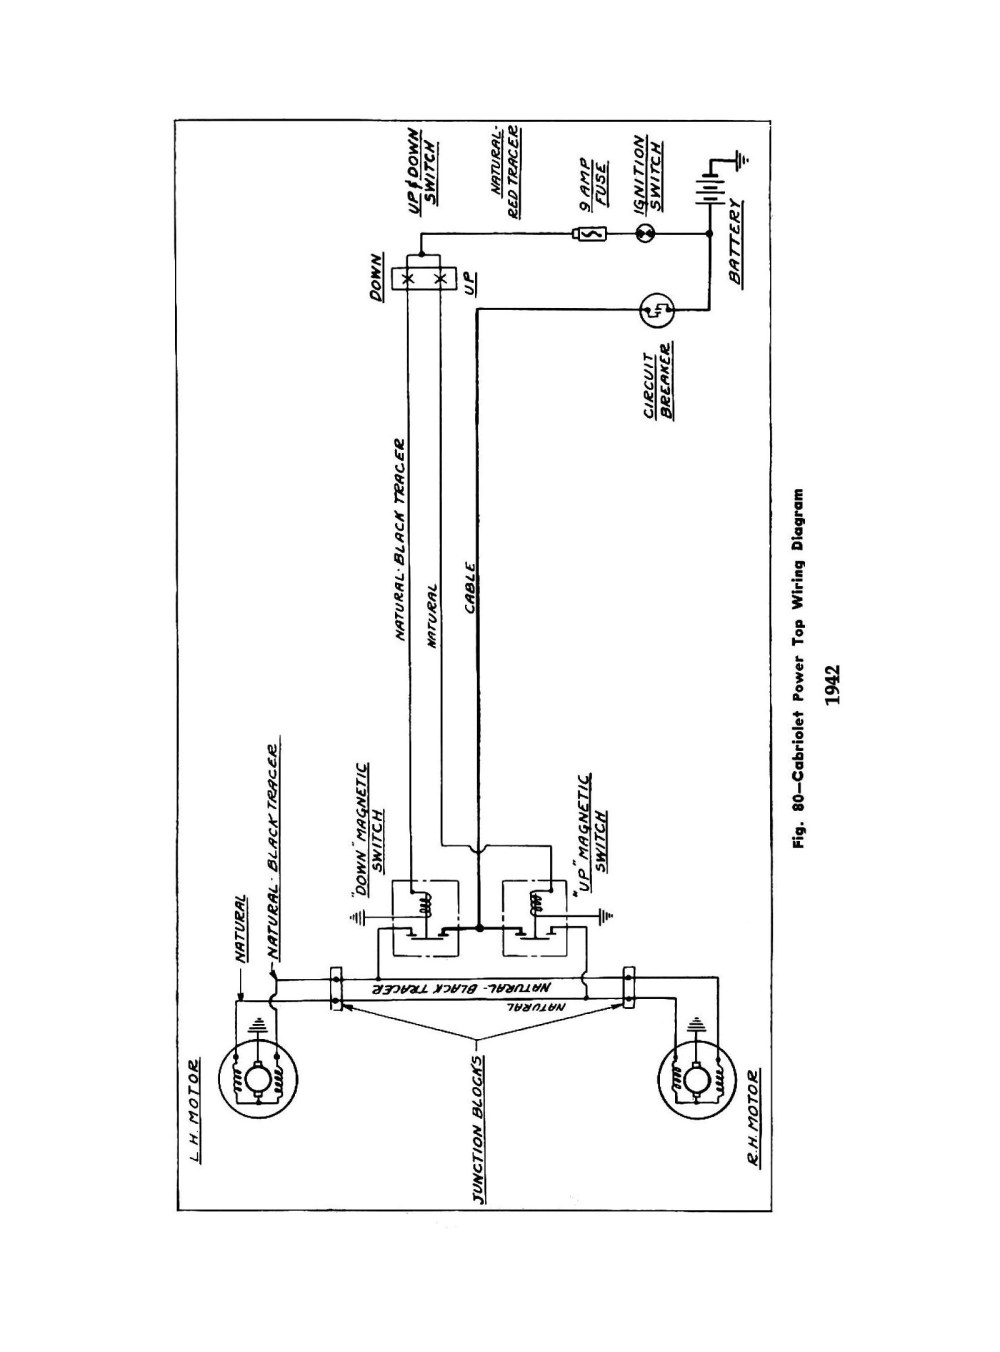 medium resolution of toyota e locker wiring diagram free wiring diagram 2006 toyota tundra wiring diagram toyota e